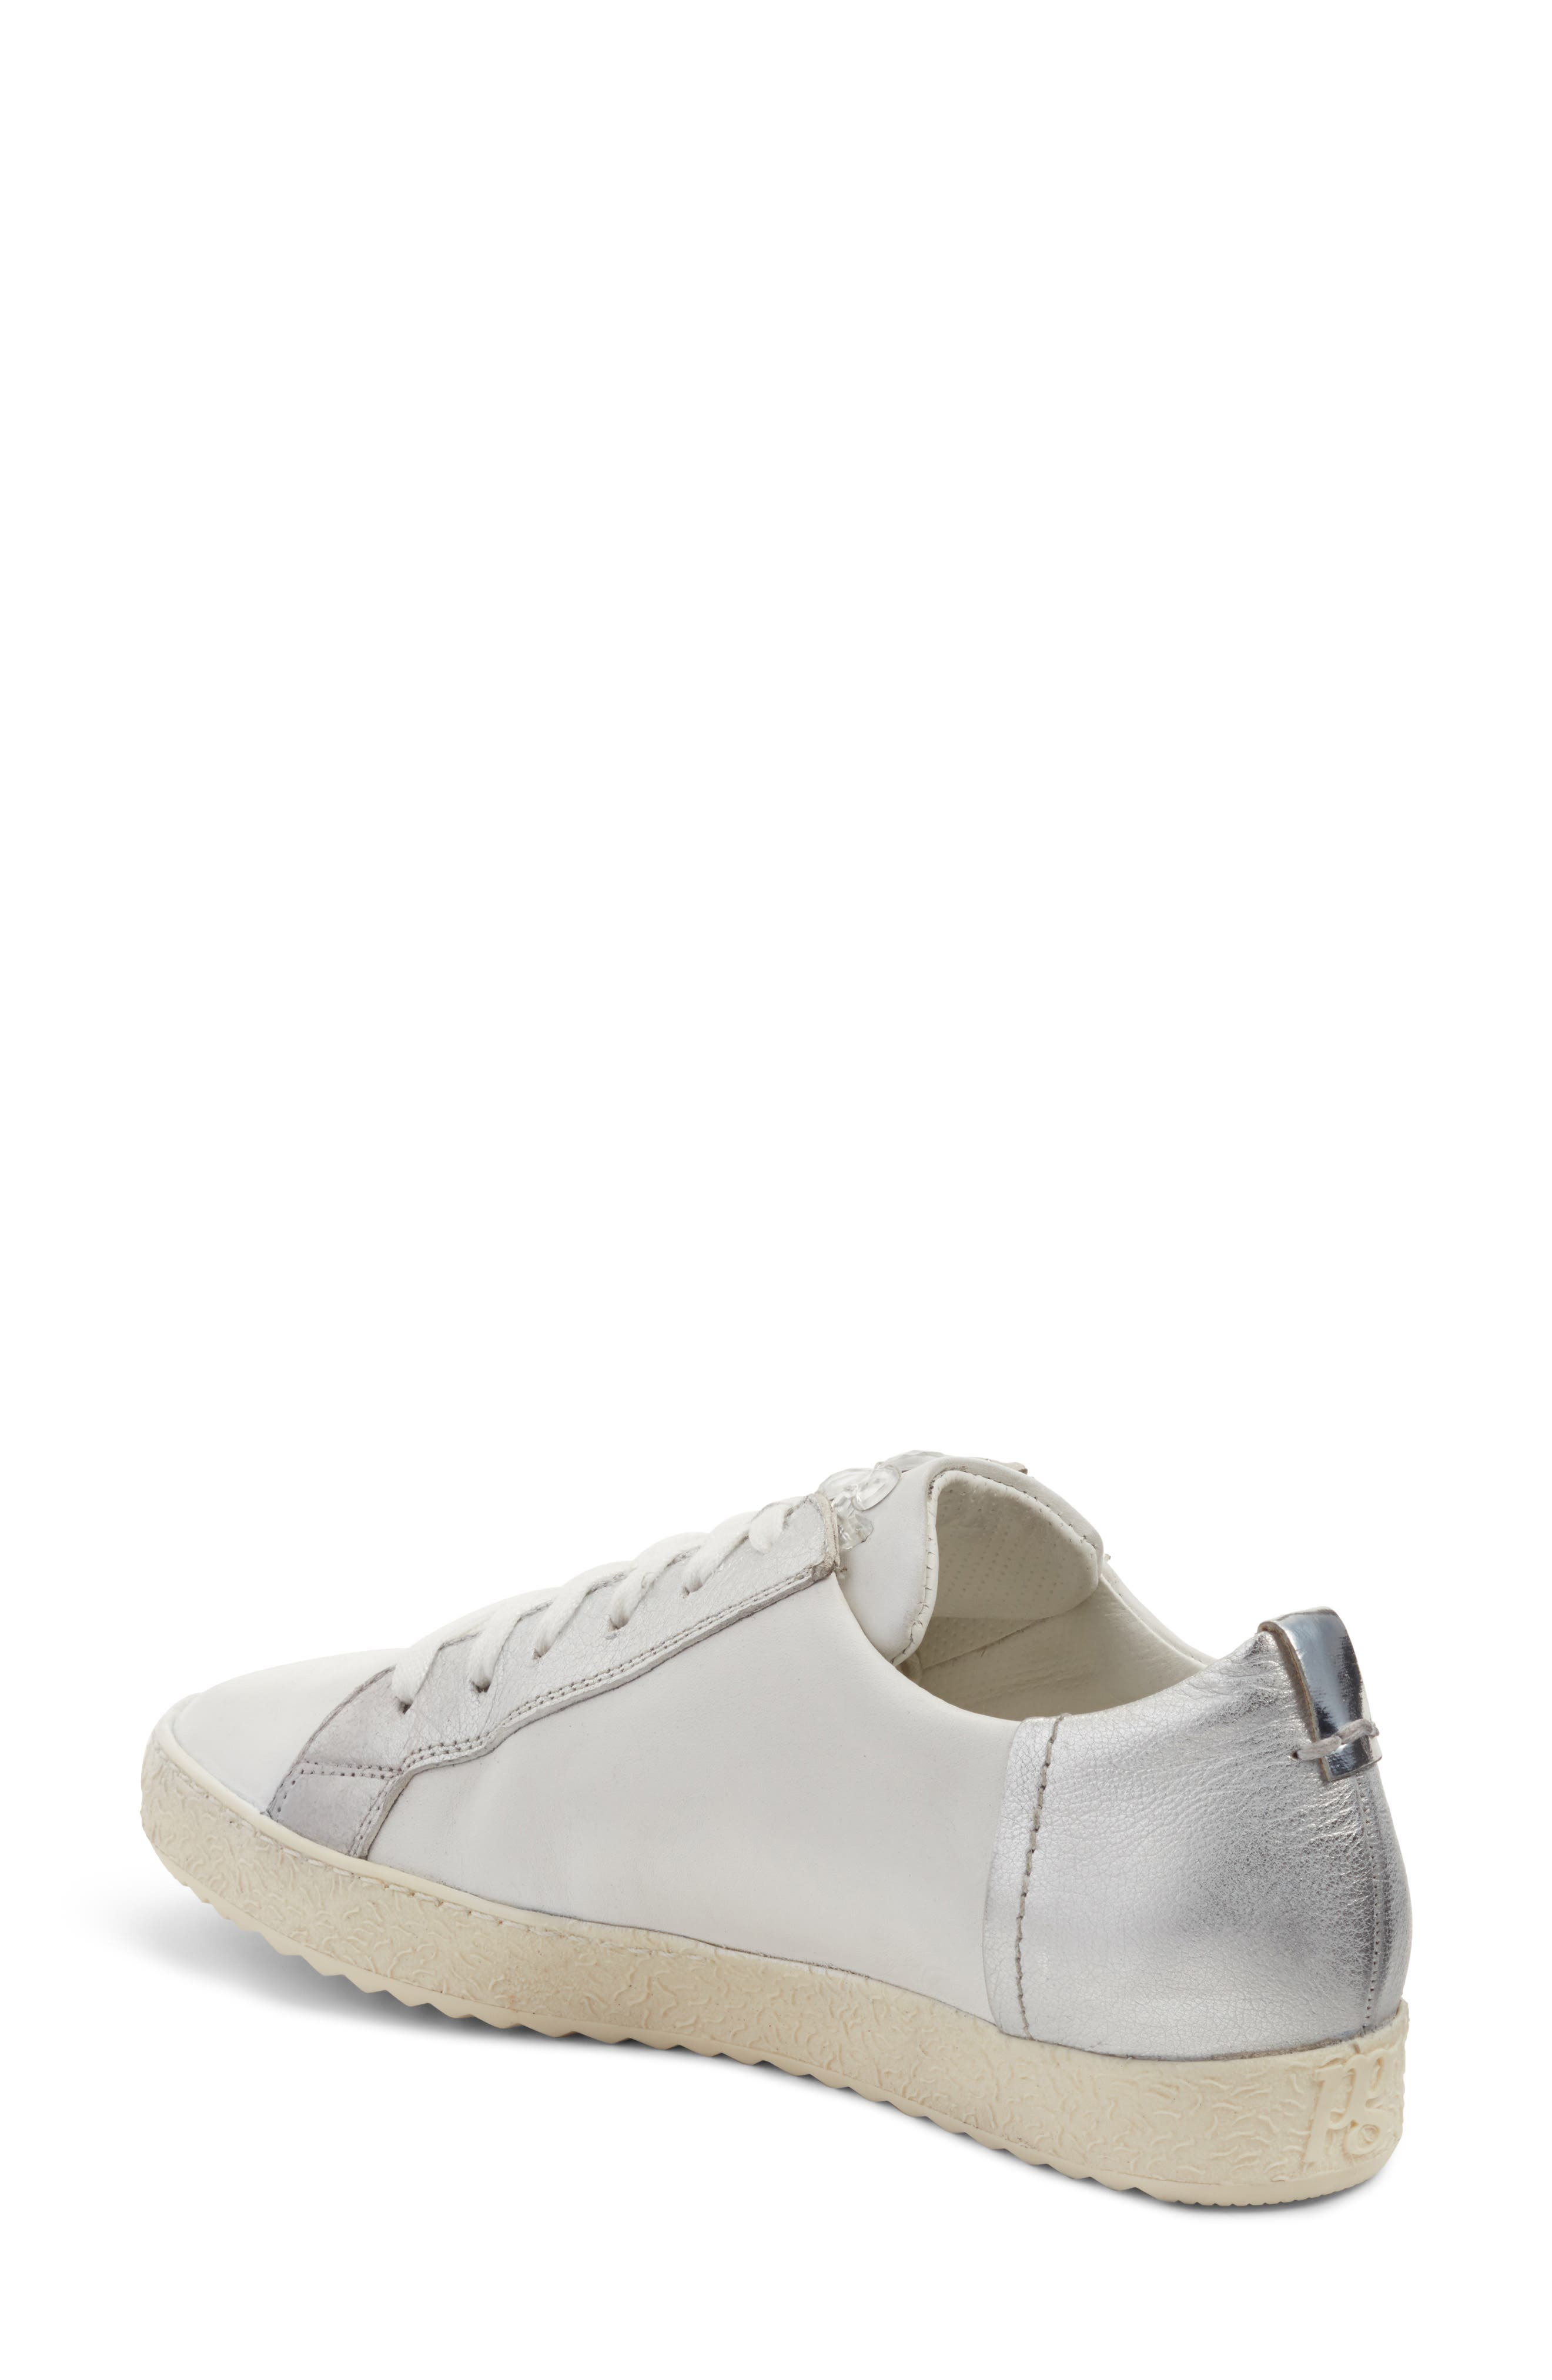 Minnie Sneaker,                             Alternate thumbnail 3, color,                             White/ Silver Leather